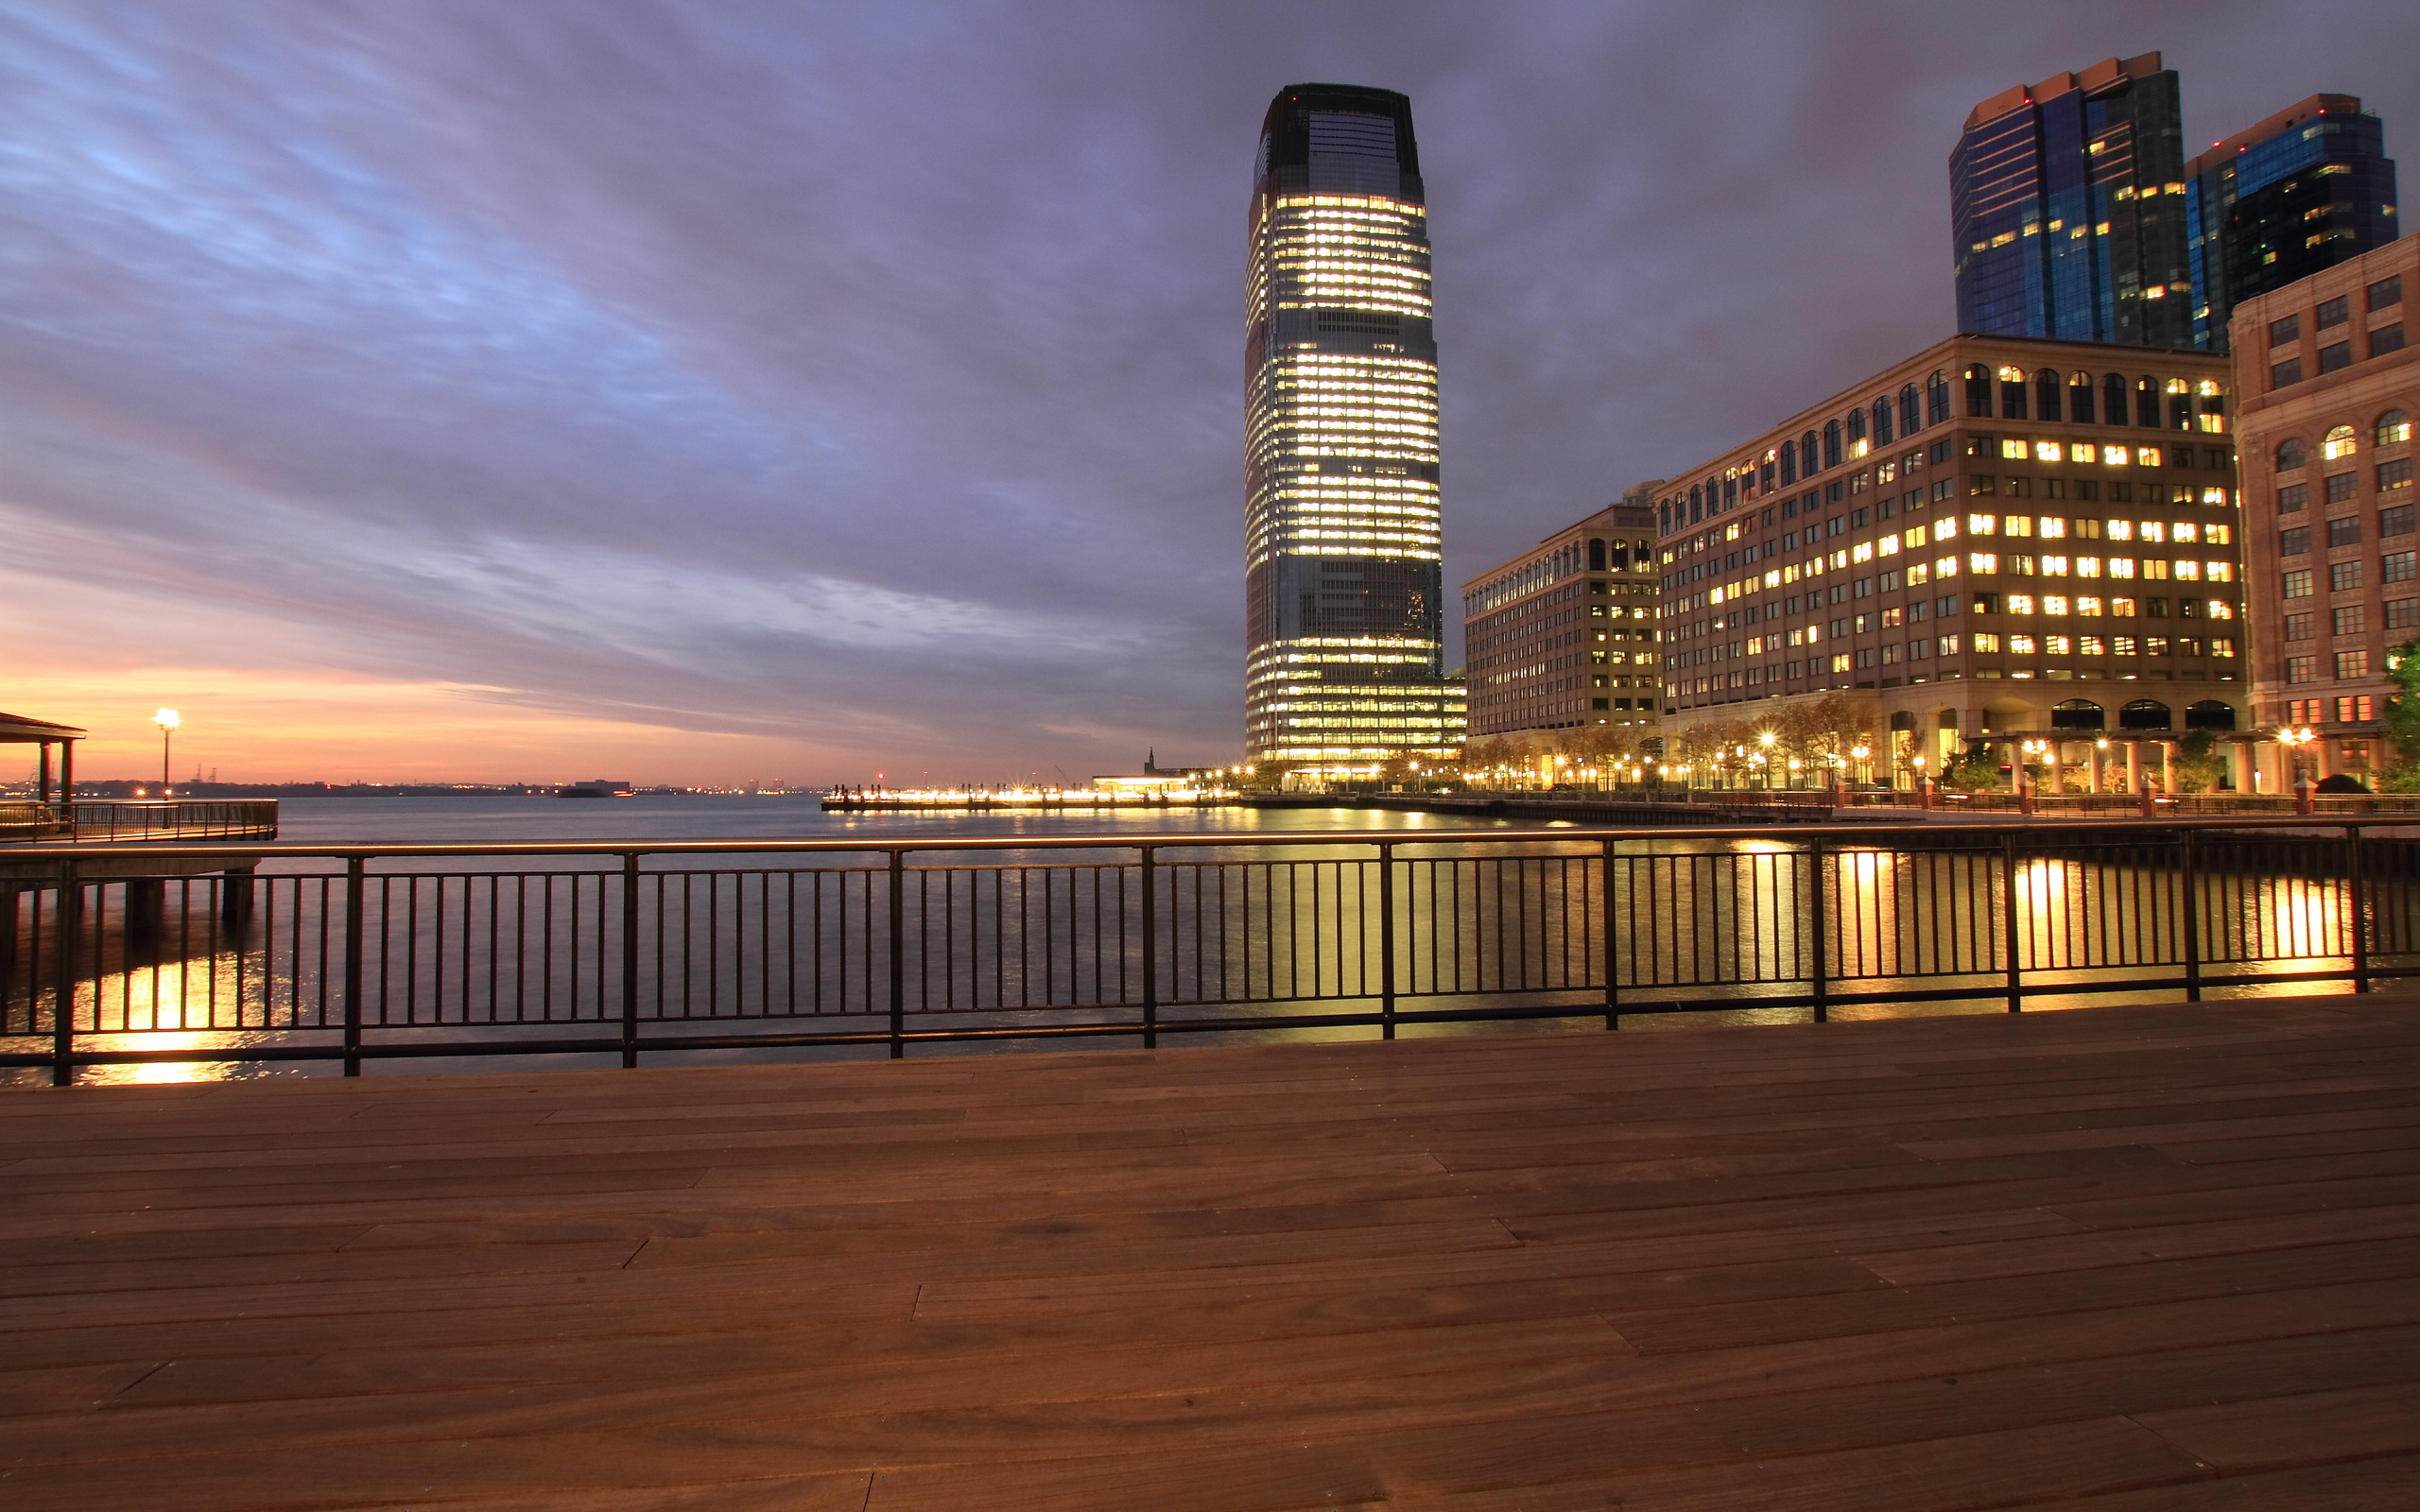 3 Jersey City Hd Wallpapers Backgrounds Wallpaper Abyss